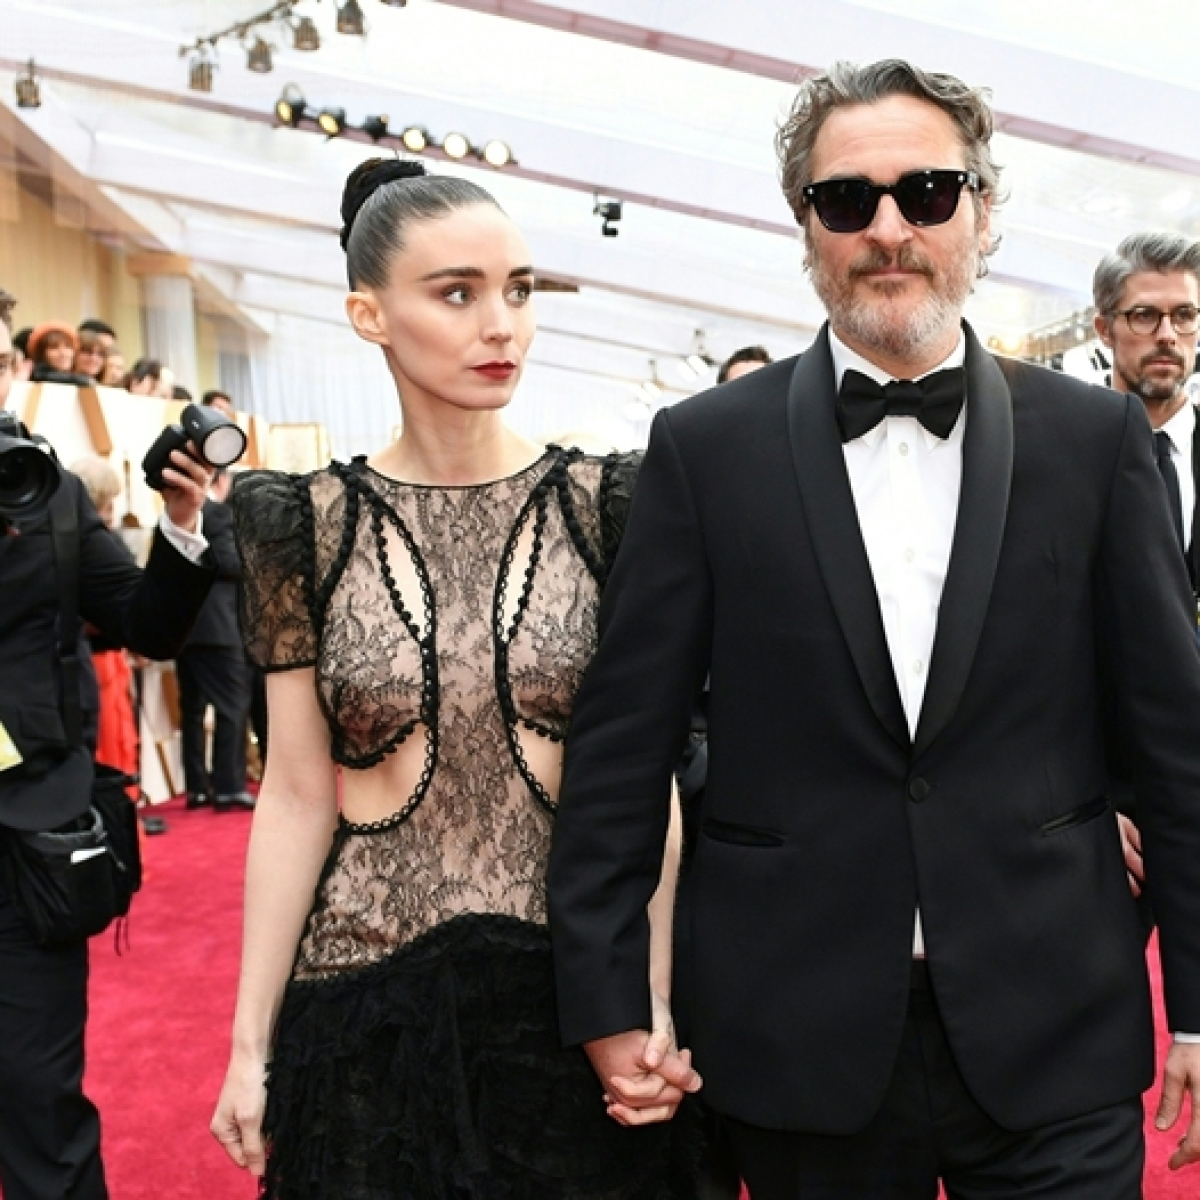 Joaquin Phoenix and Rooney Mara are expecting first child together